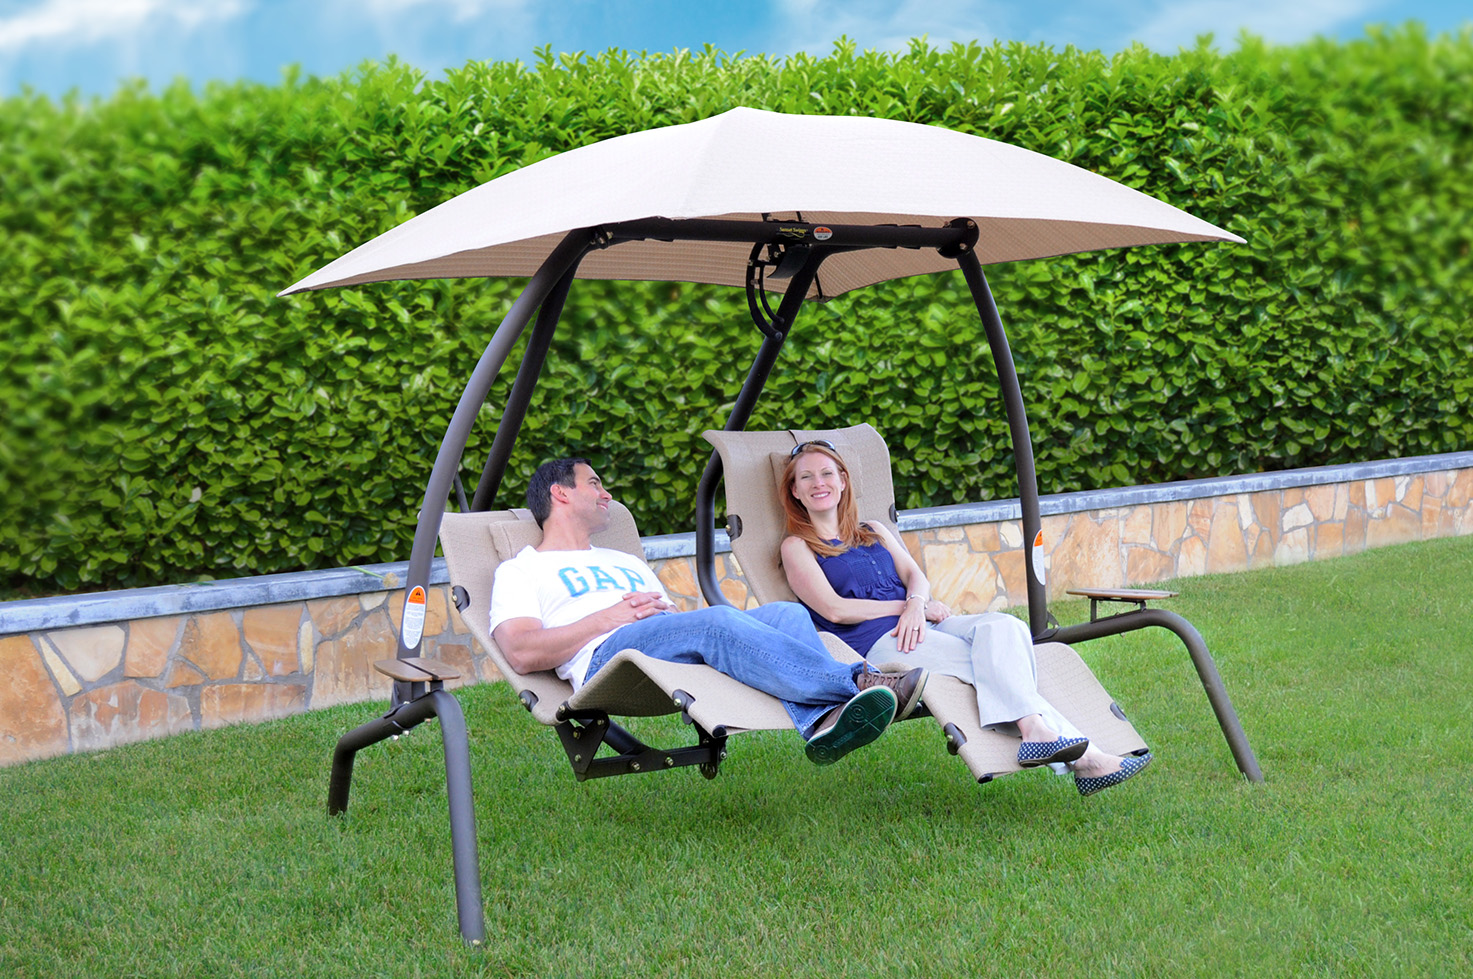 New 422l Swing Zero Gravity 2 Person Swing